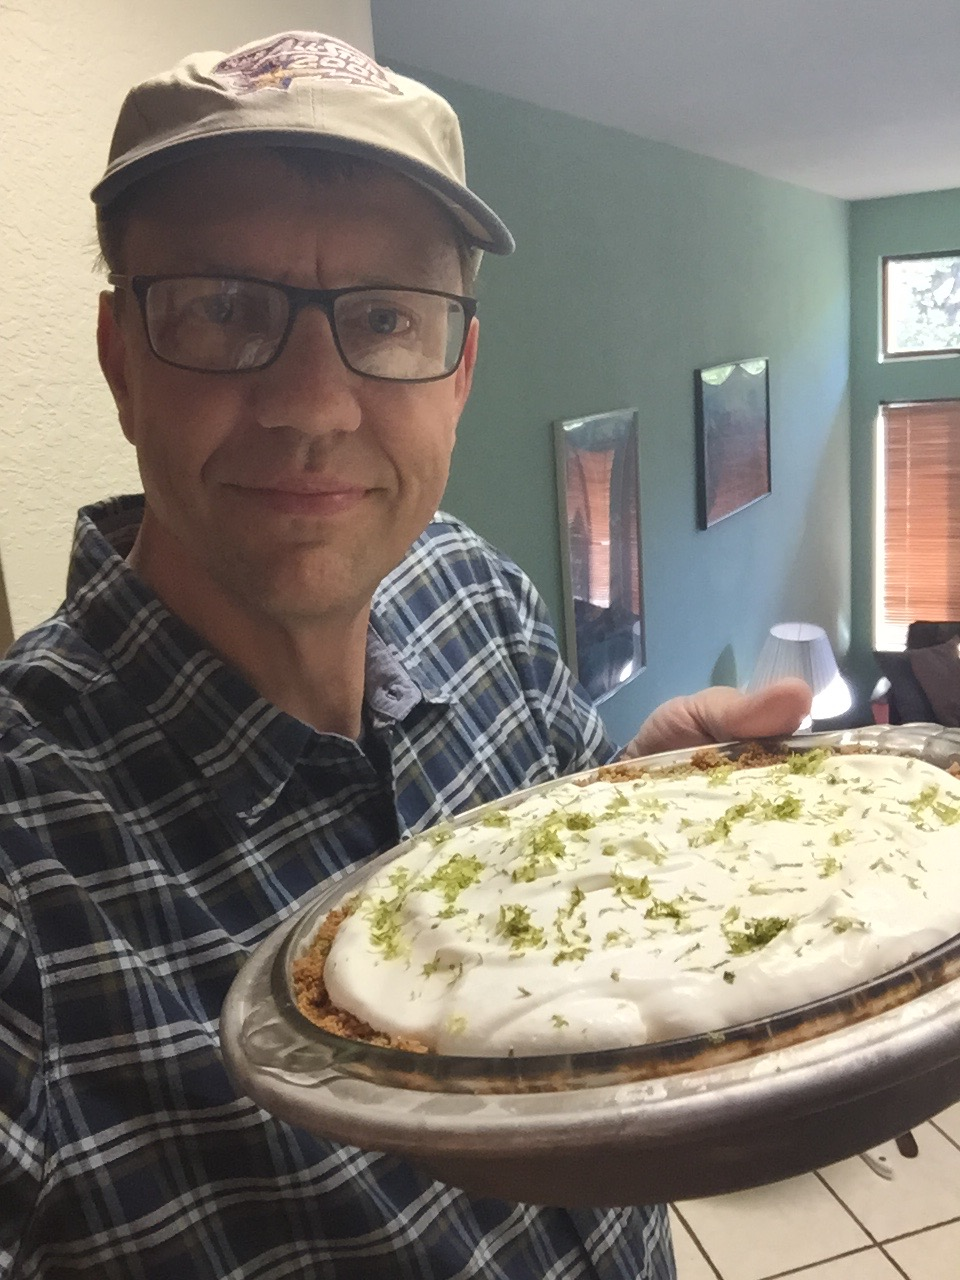 key lime pie for the workers